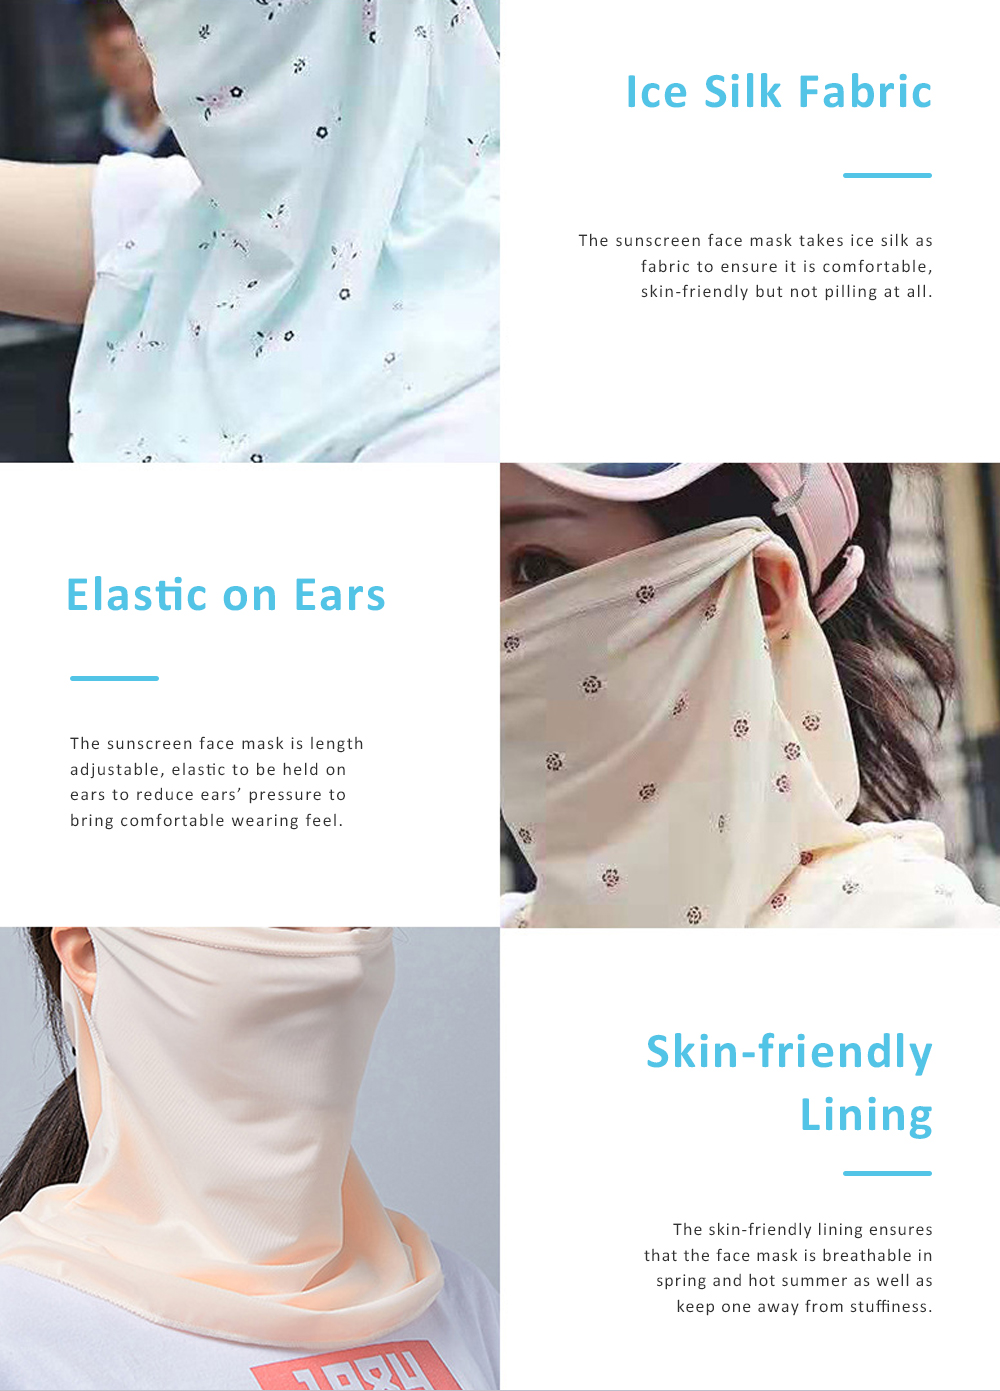 Anti-UV Ice Silk Face Mask for Women Wear in Spring Summer Ultraviolet Proof Cold Feeling Face Guard for Riding Outdoor 3